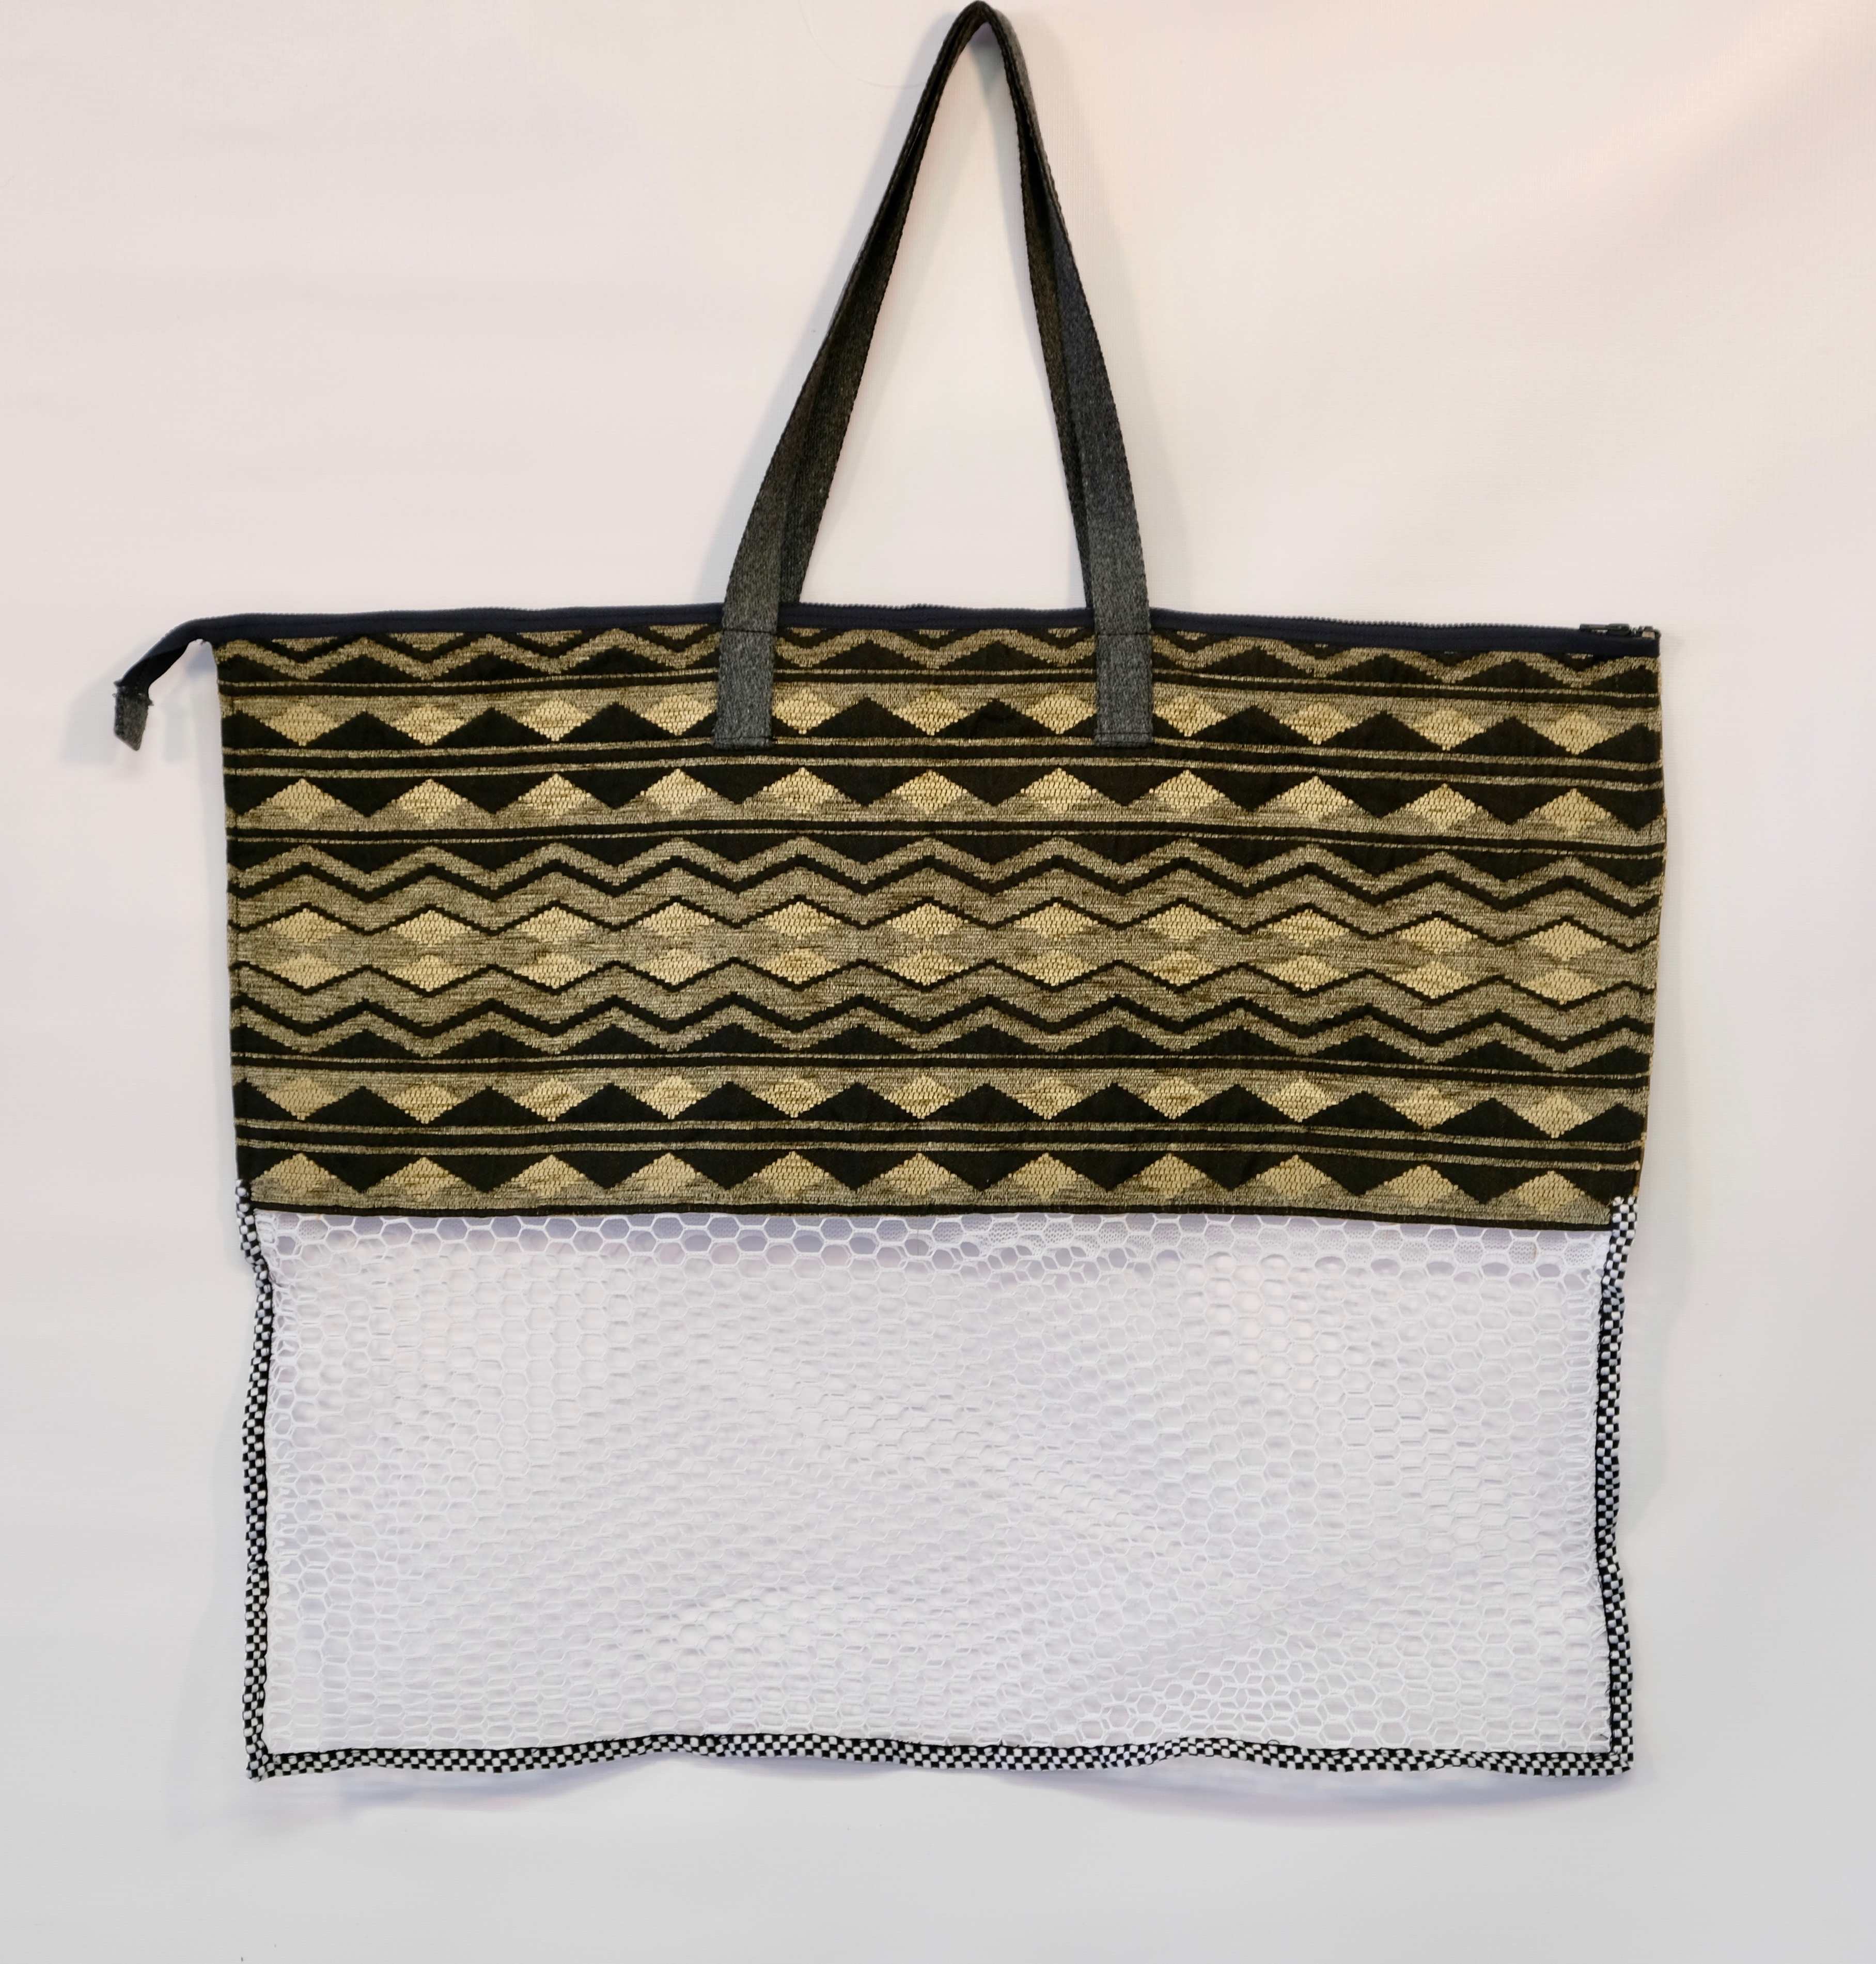 Zipped Tapestry Tote